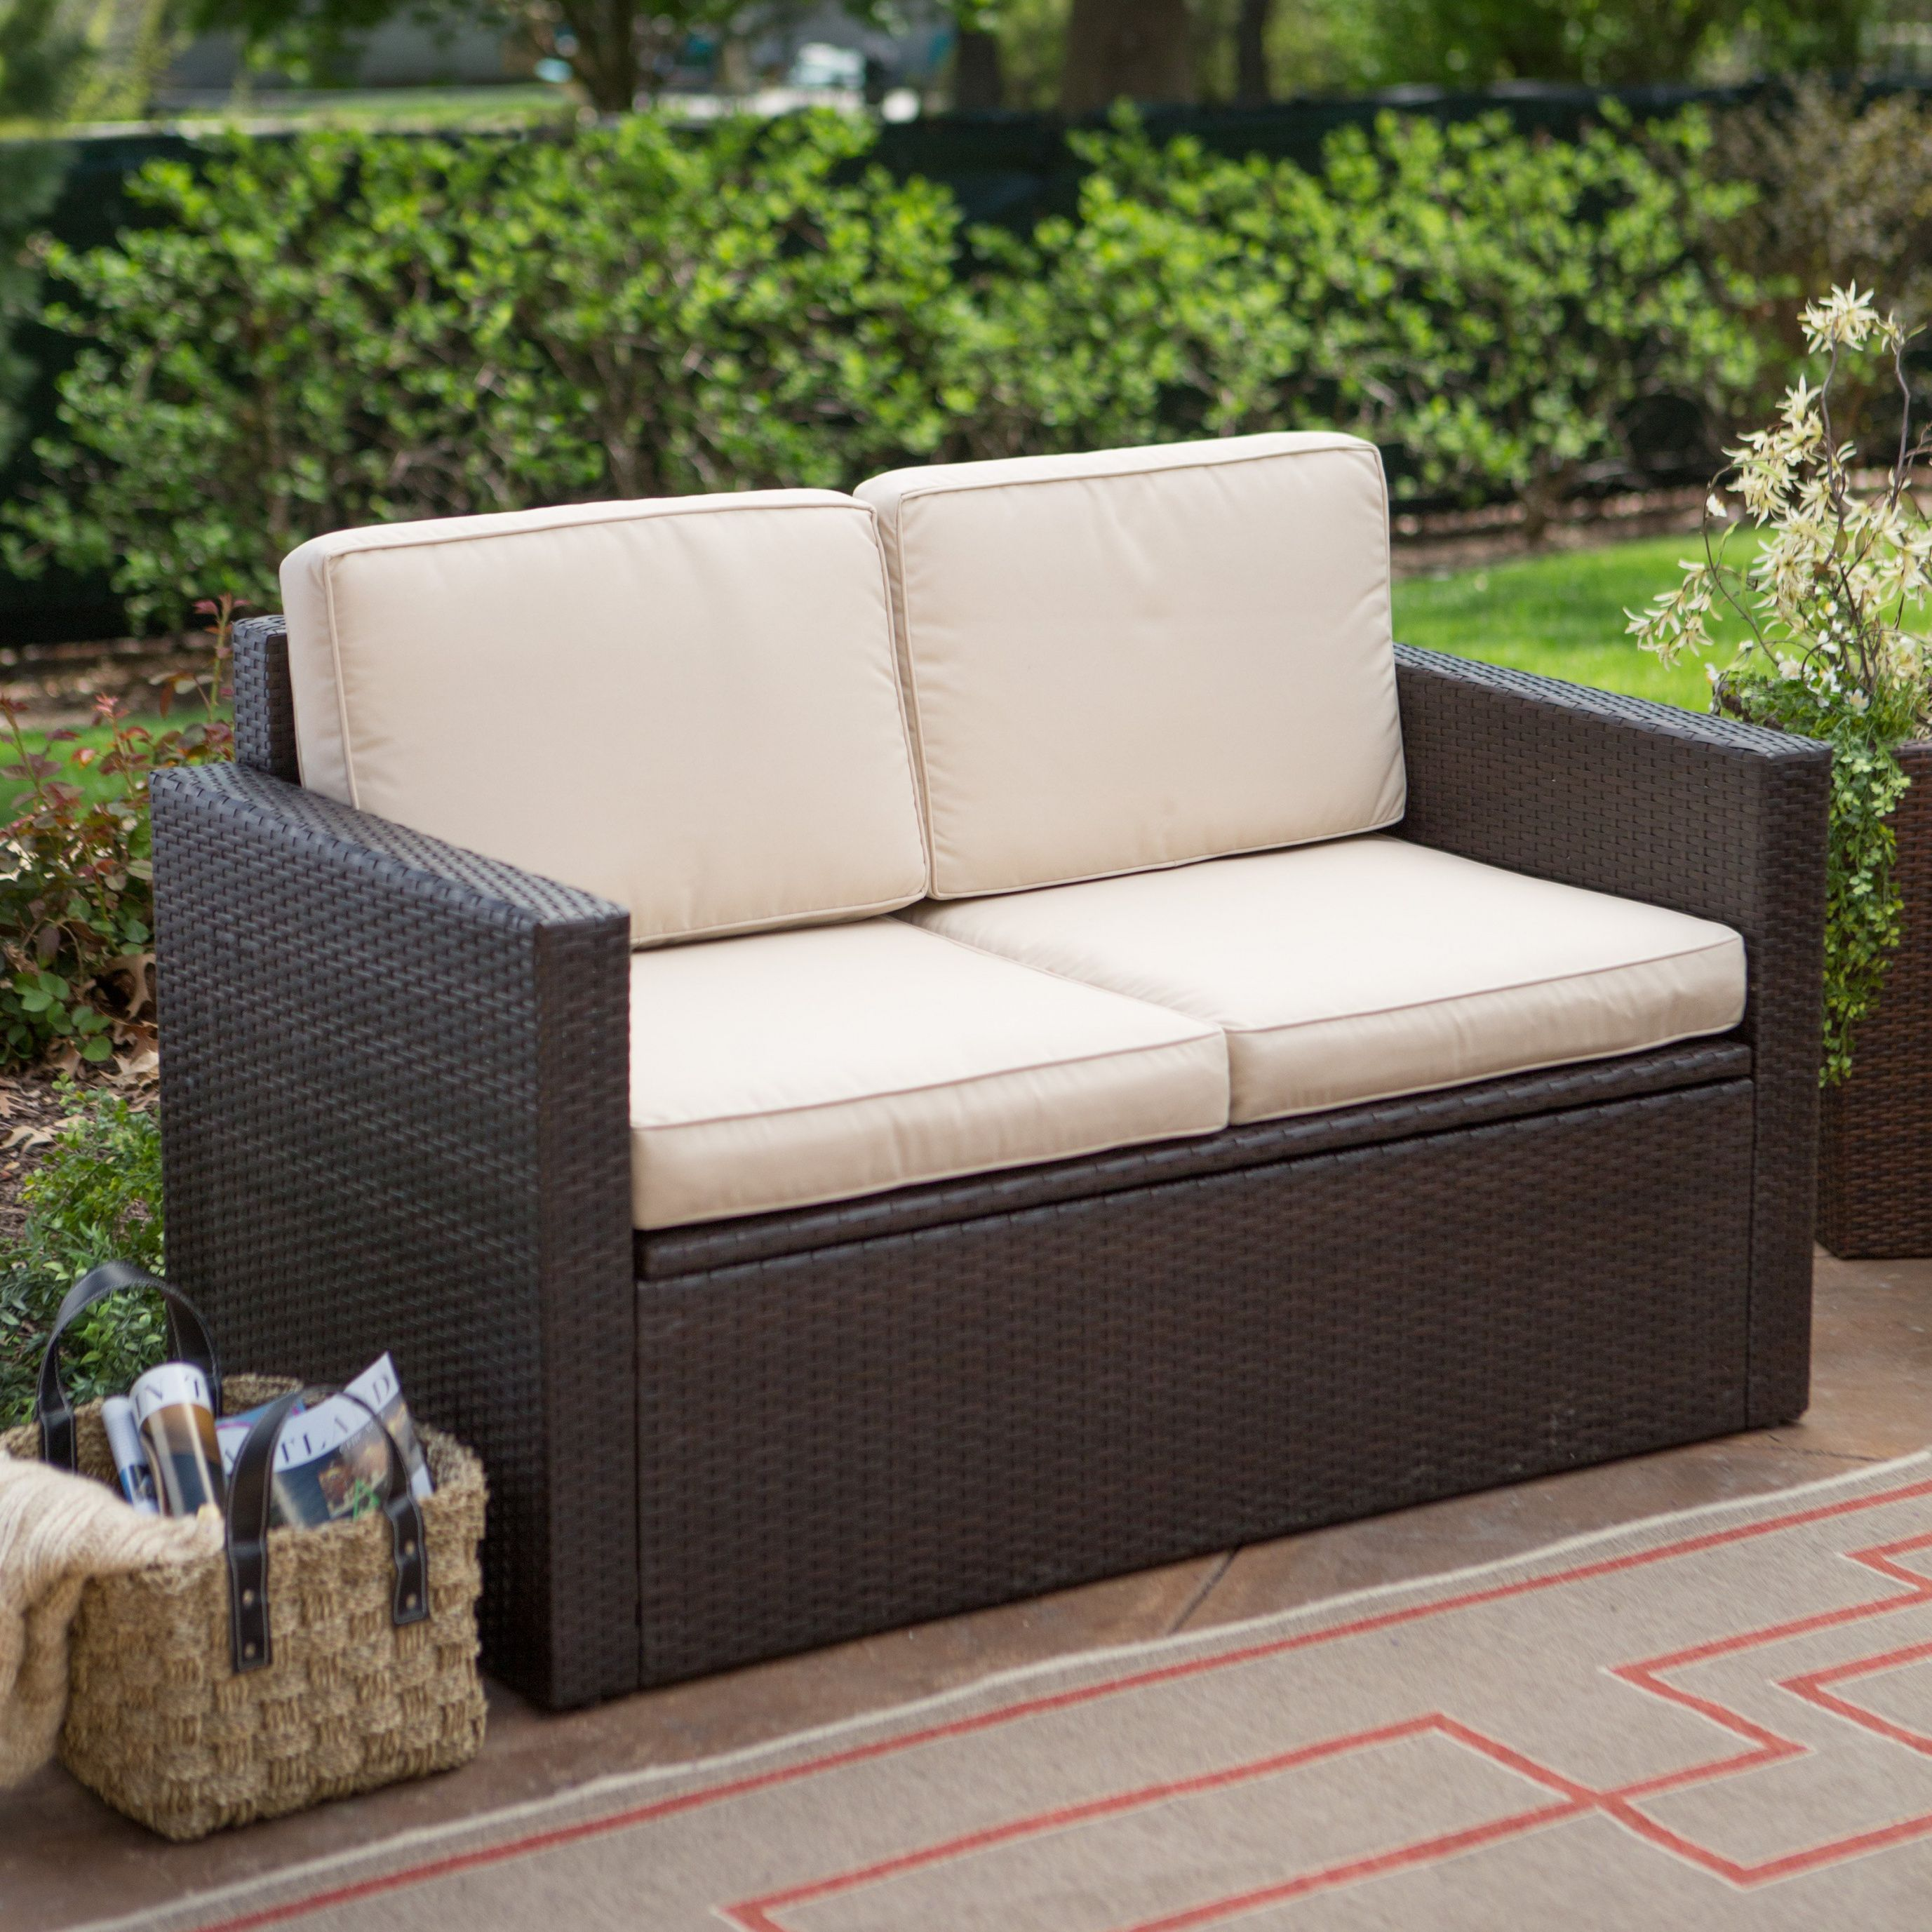 Outdoor Furniture with Storage Best Cheap Modern Furniture Check